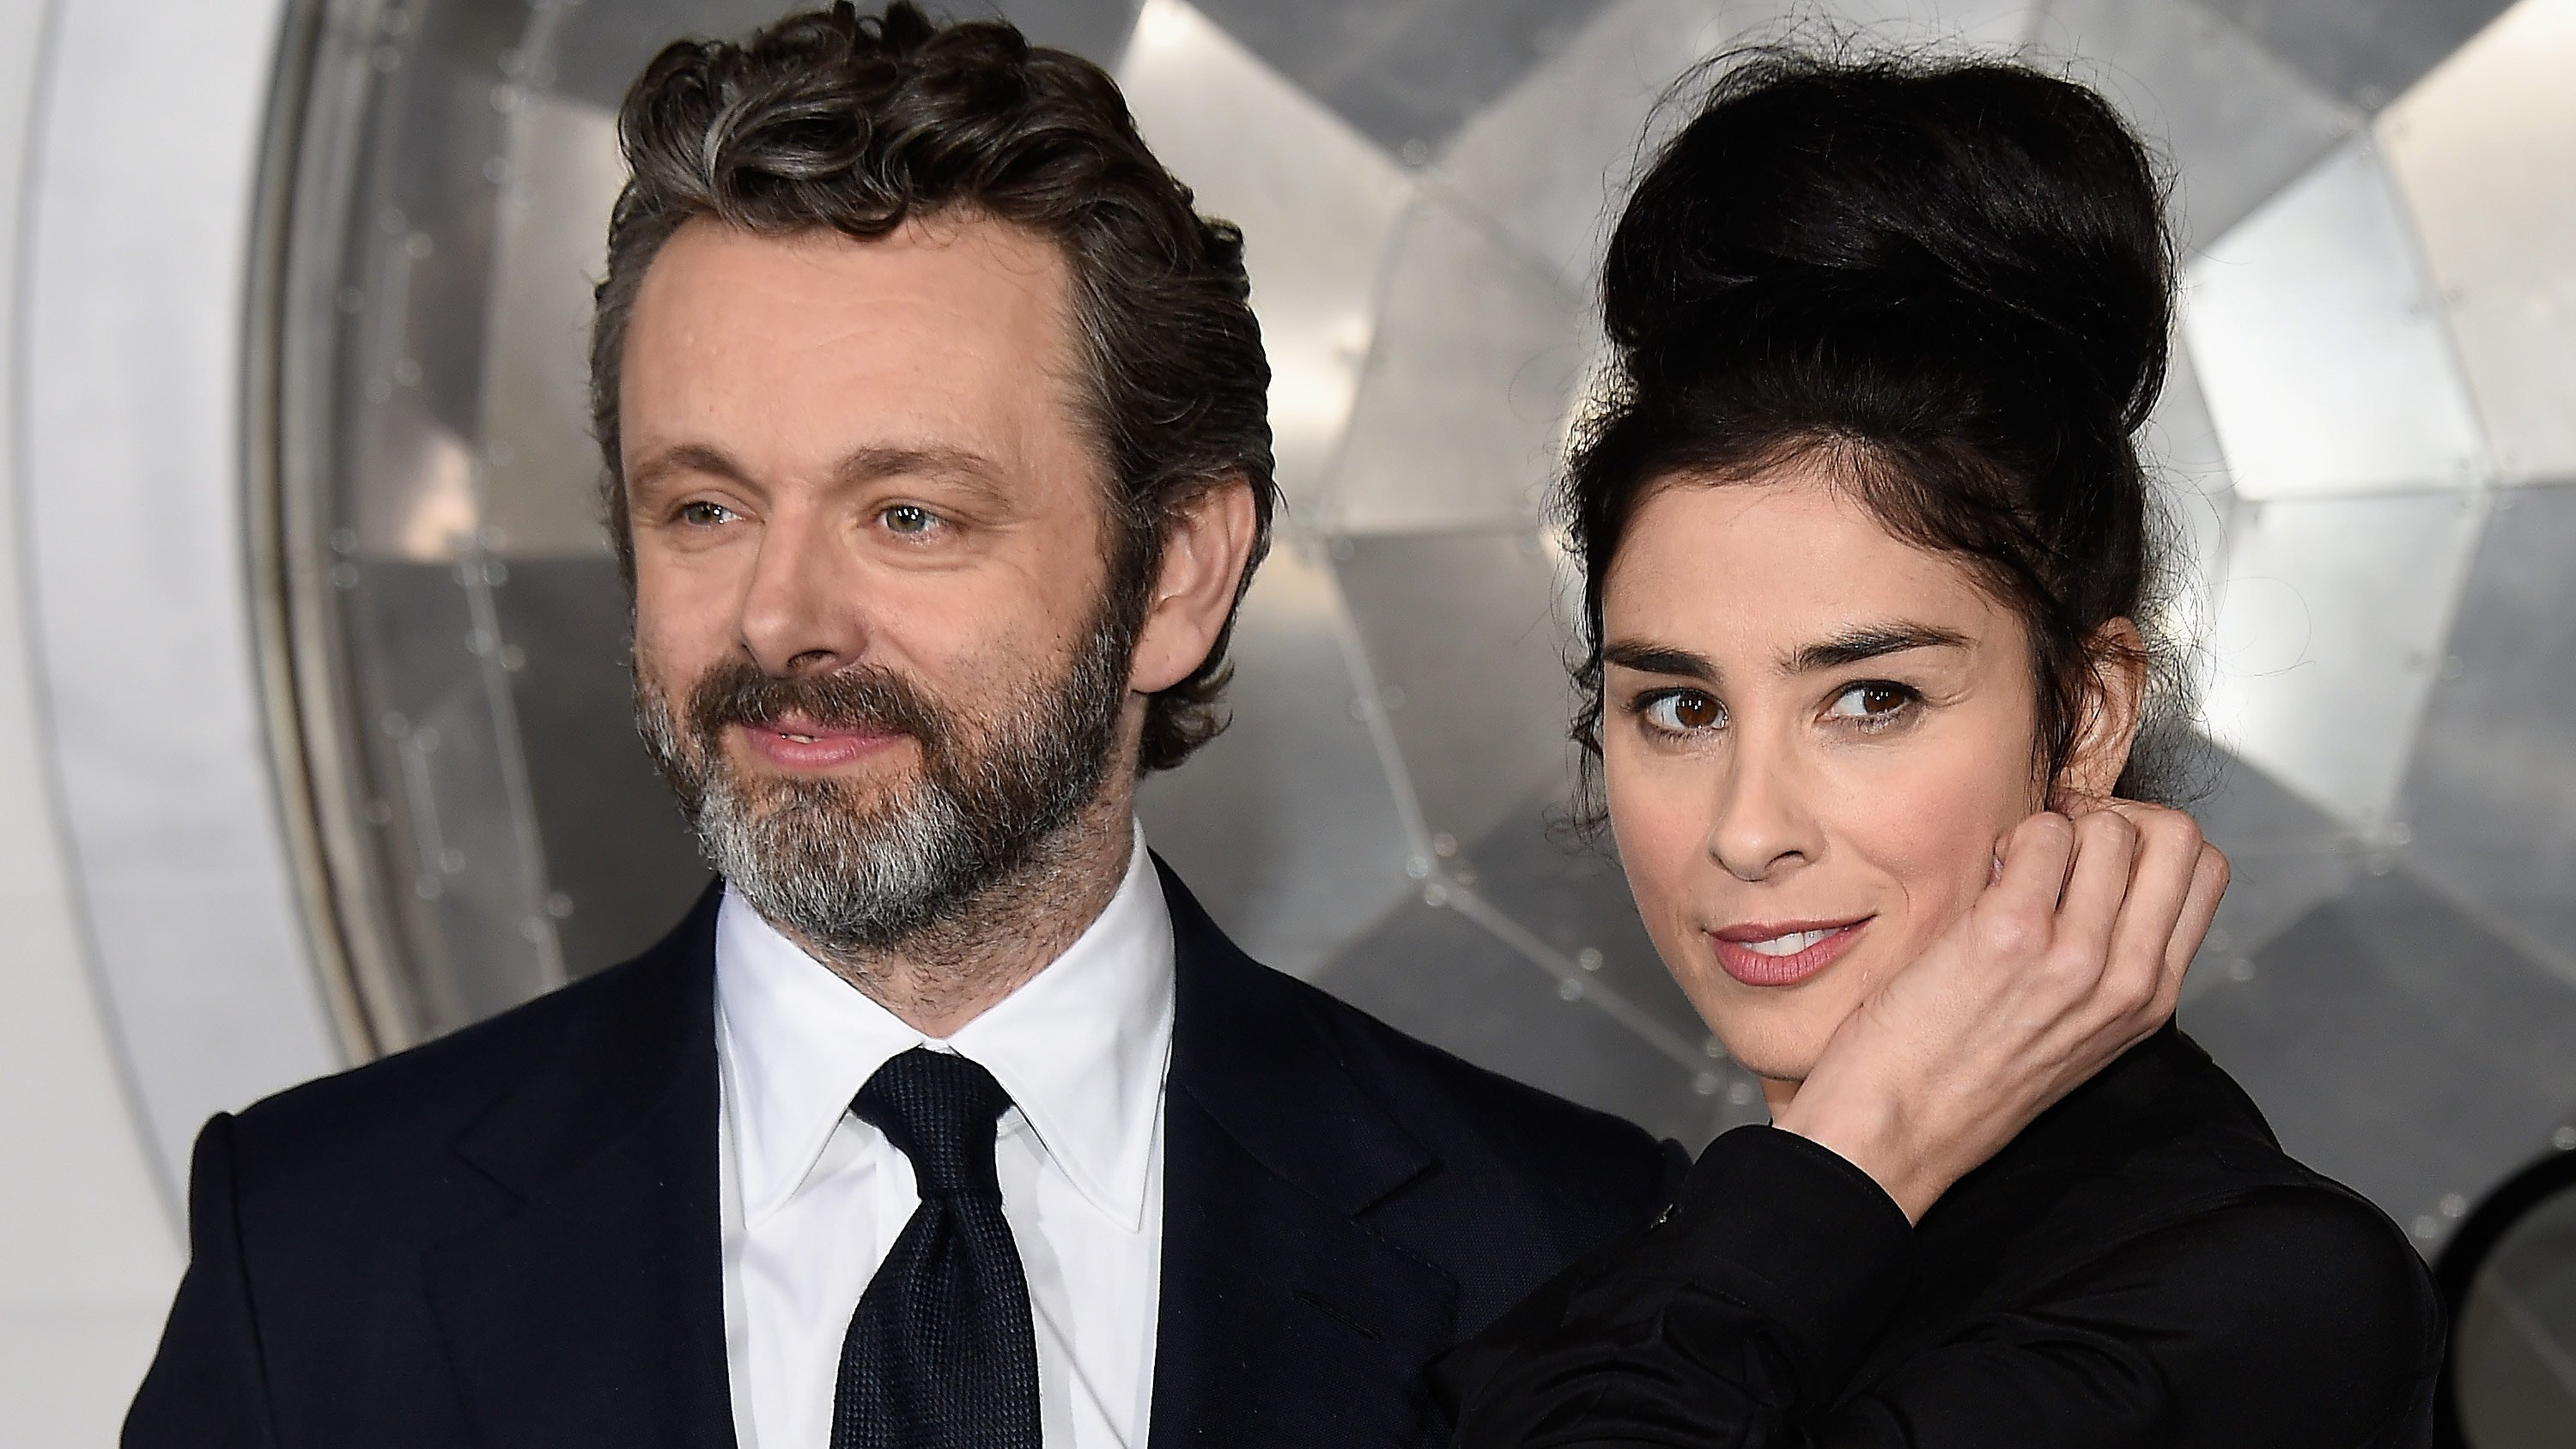 Leave it to Sarah Silverman to make a joke of her breakup. The comedian tweeted Monday that she has split with actor Michael Shee